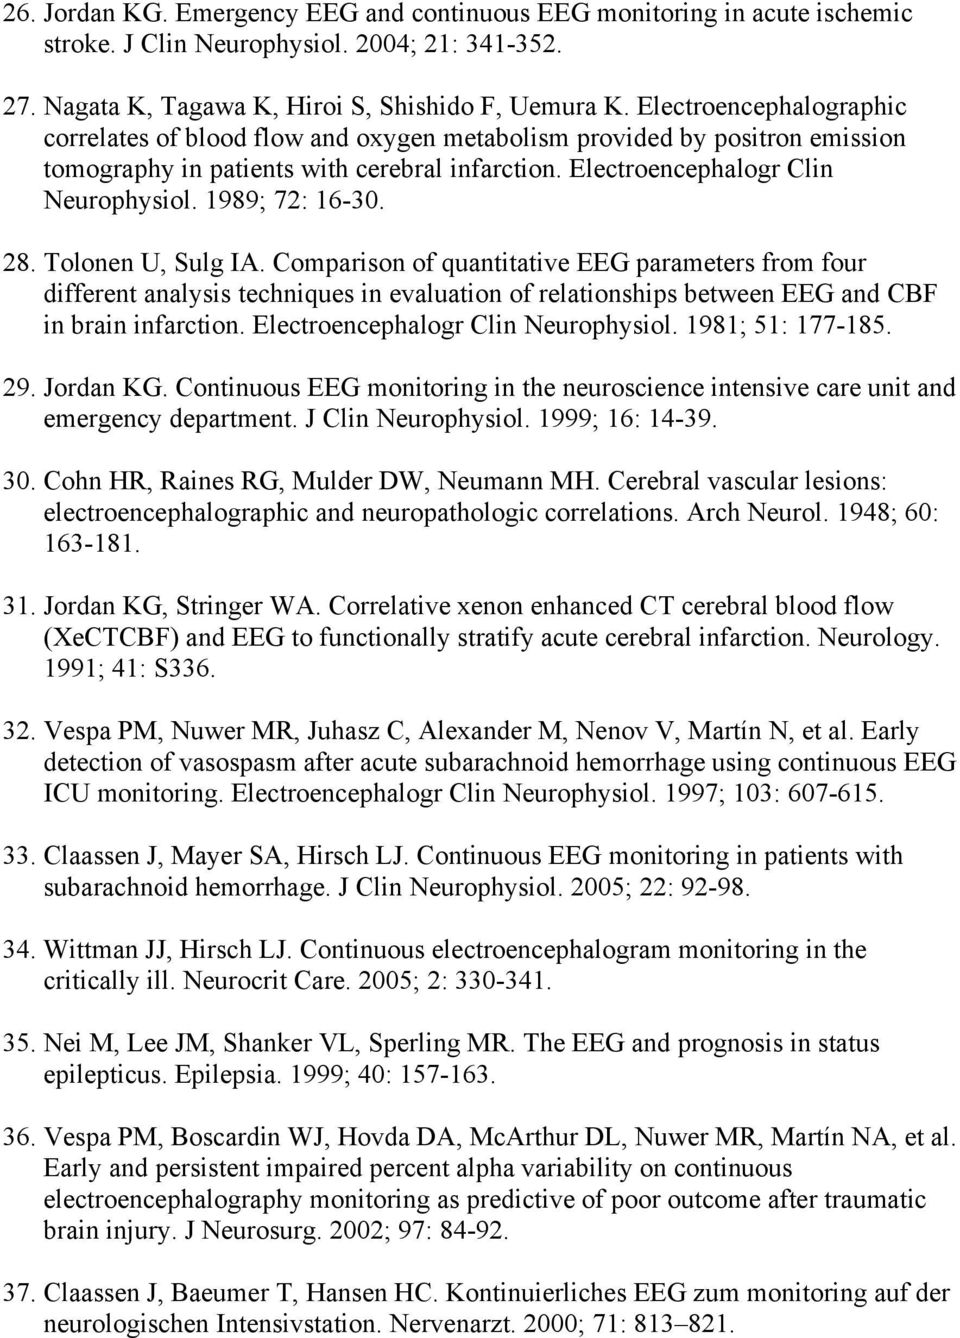 1989; 72: 16-30. 28. Tolonen U, Sulg IA. Comparison of quantitative EEG parameters from four different analysis techniques in evaluation of relationships between EEG and CBF in brain infarction.